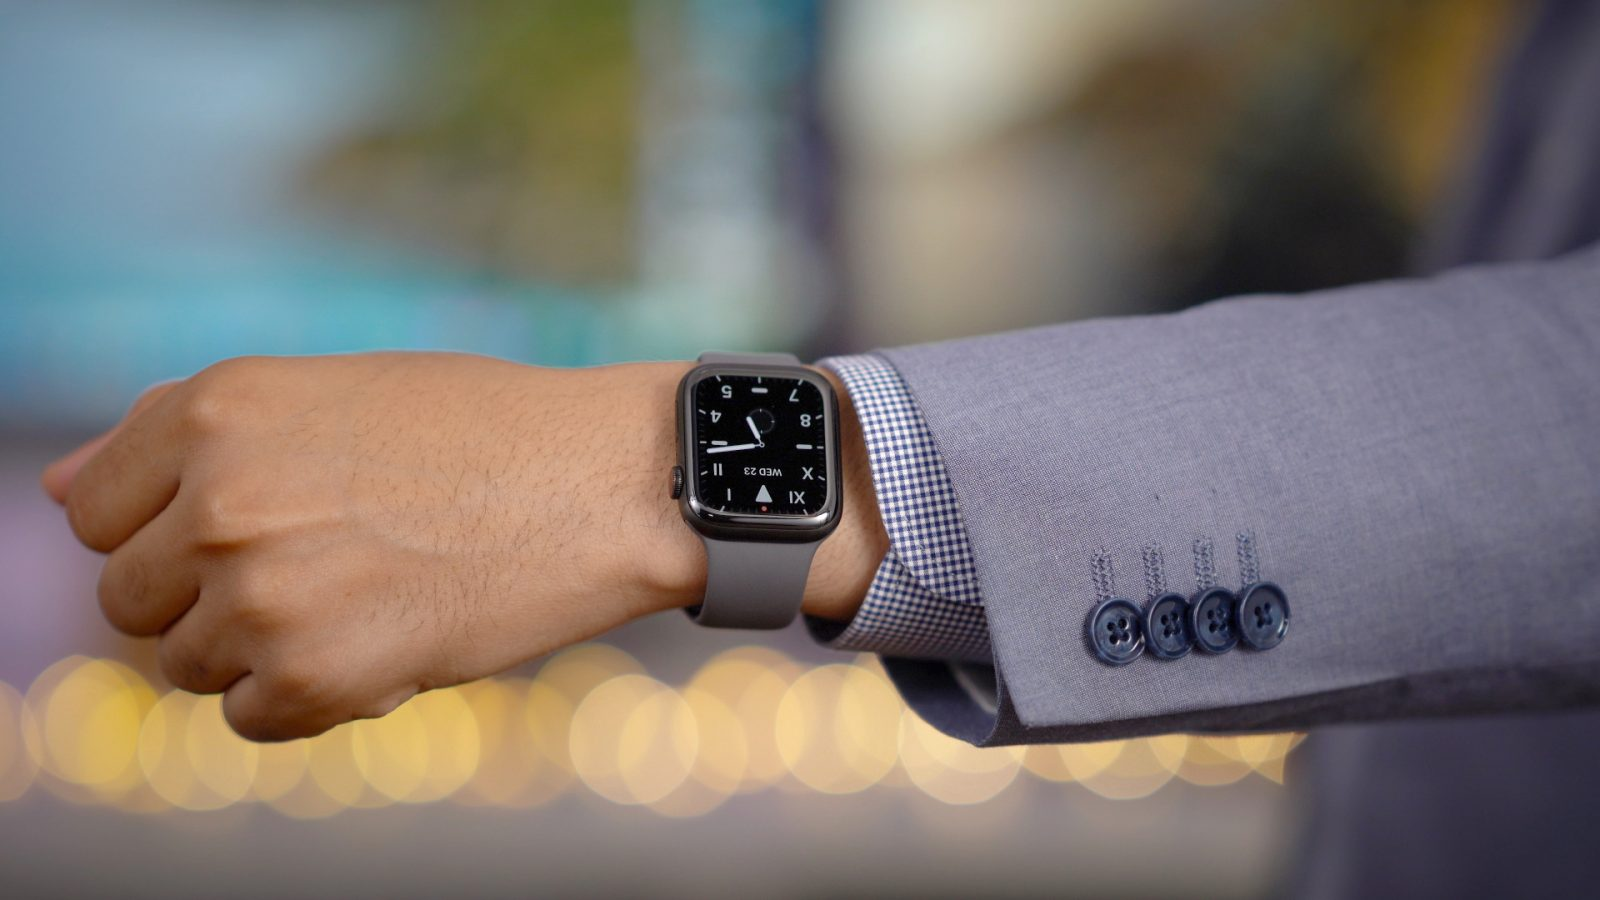 Bipartisanship in Washington: Senators from both parties break impeachment trial rules with Apple Watch